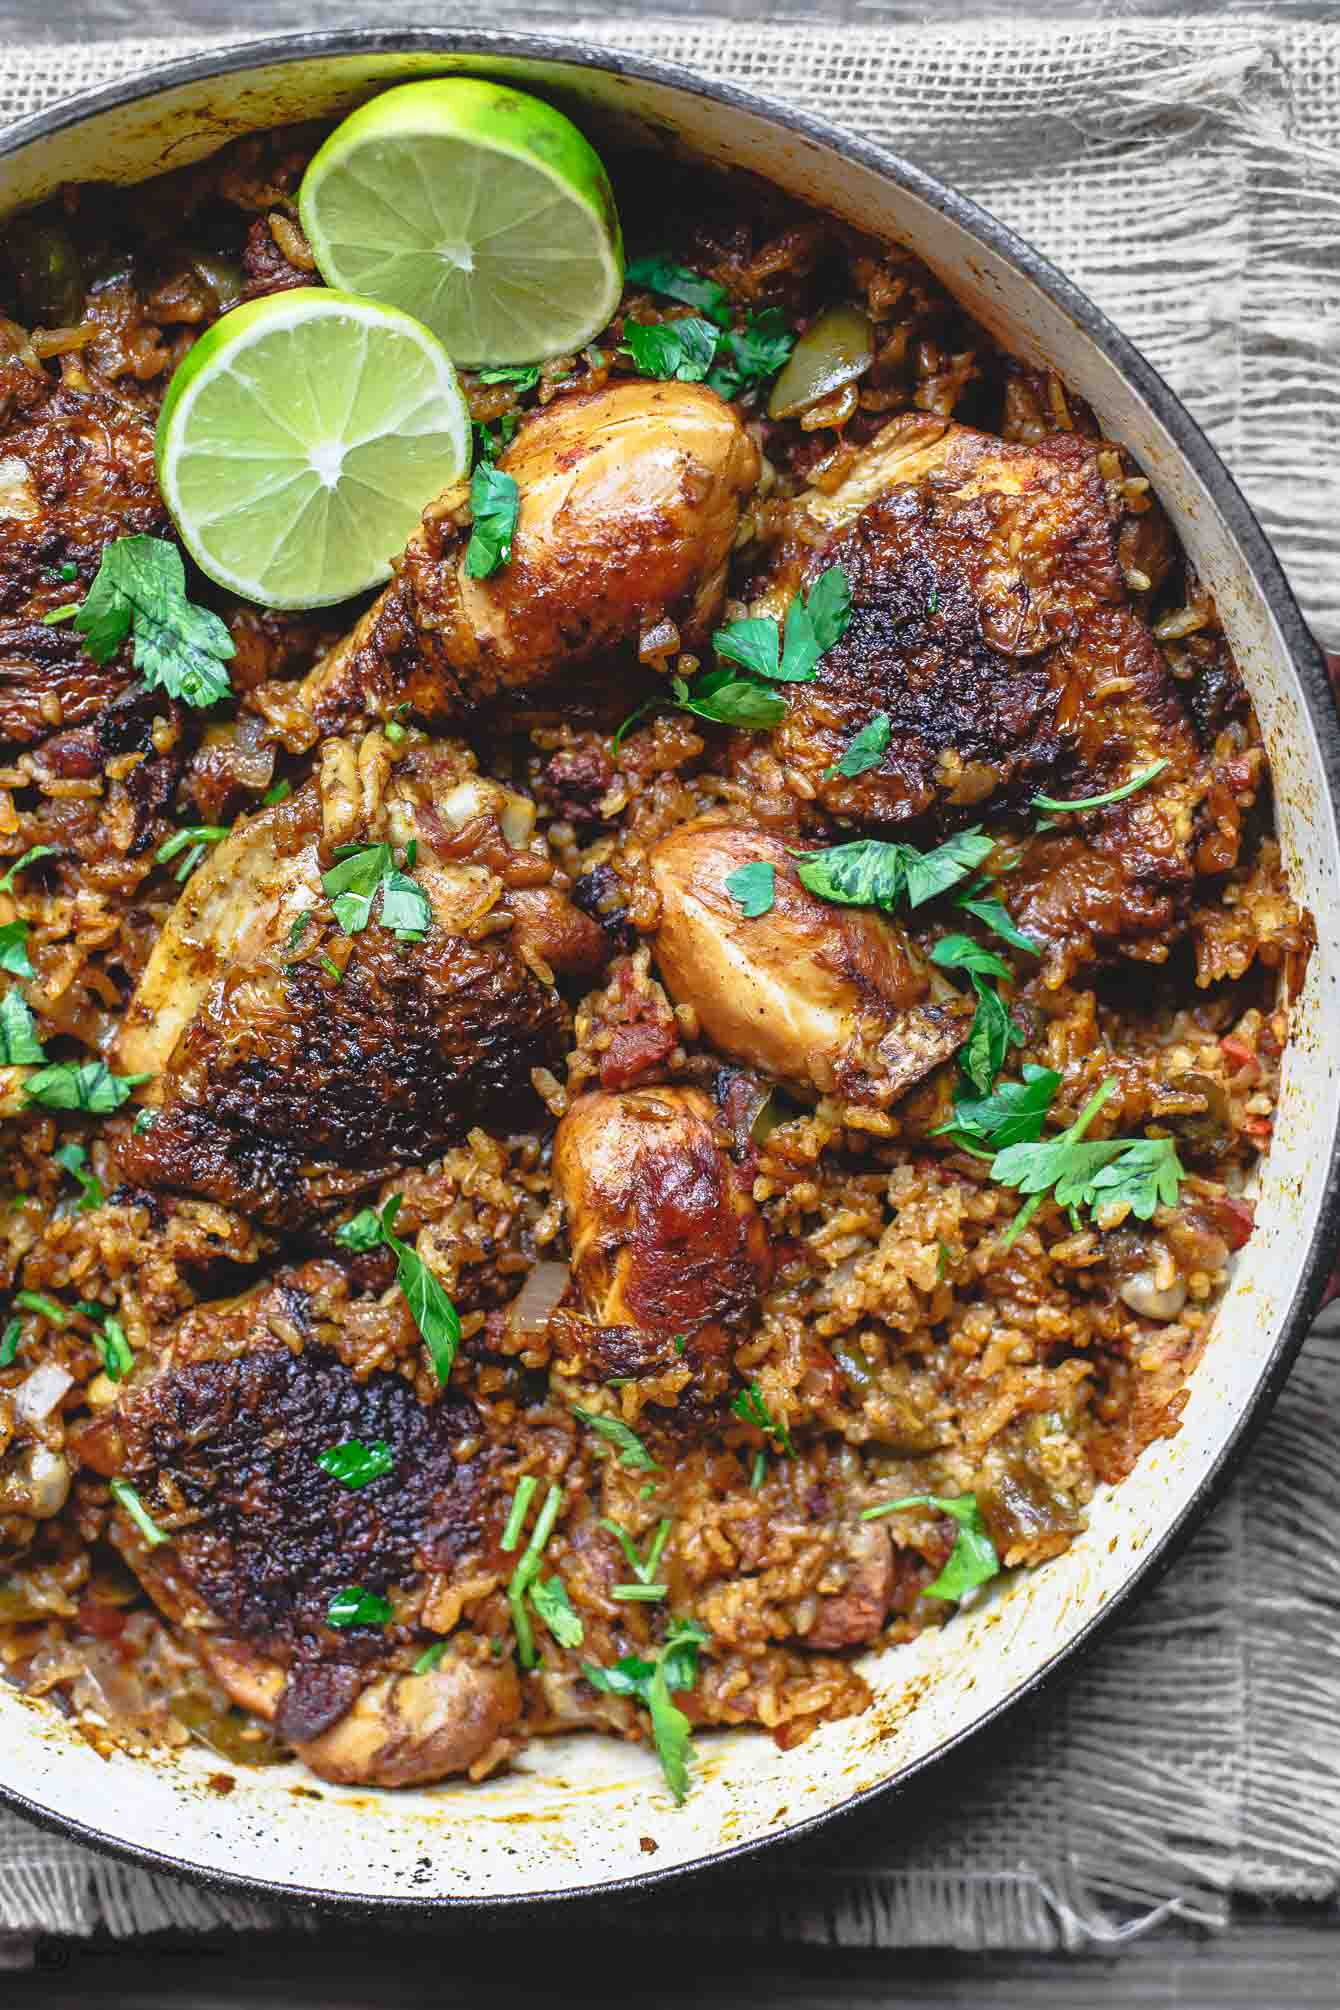 Simple spanish chicken and rice recipe with chorizo the spanish chicken and rice recipe with chorizo the mediterranean dish a simpler version of forumfinder Images